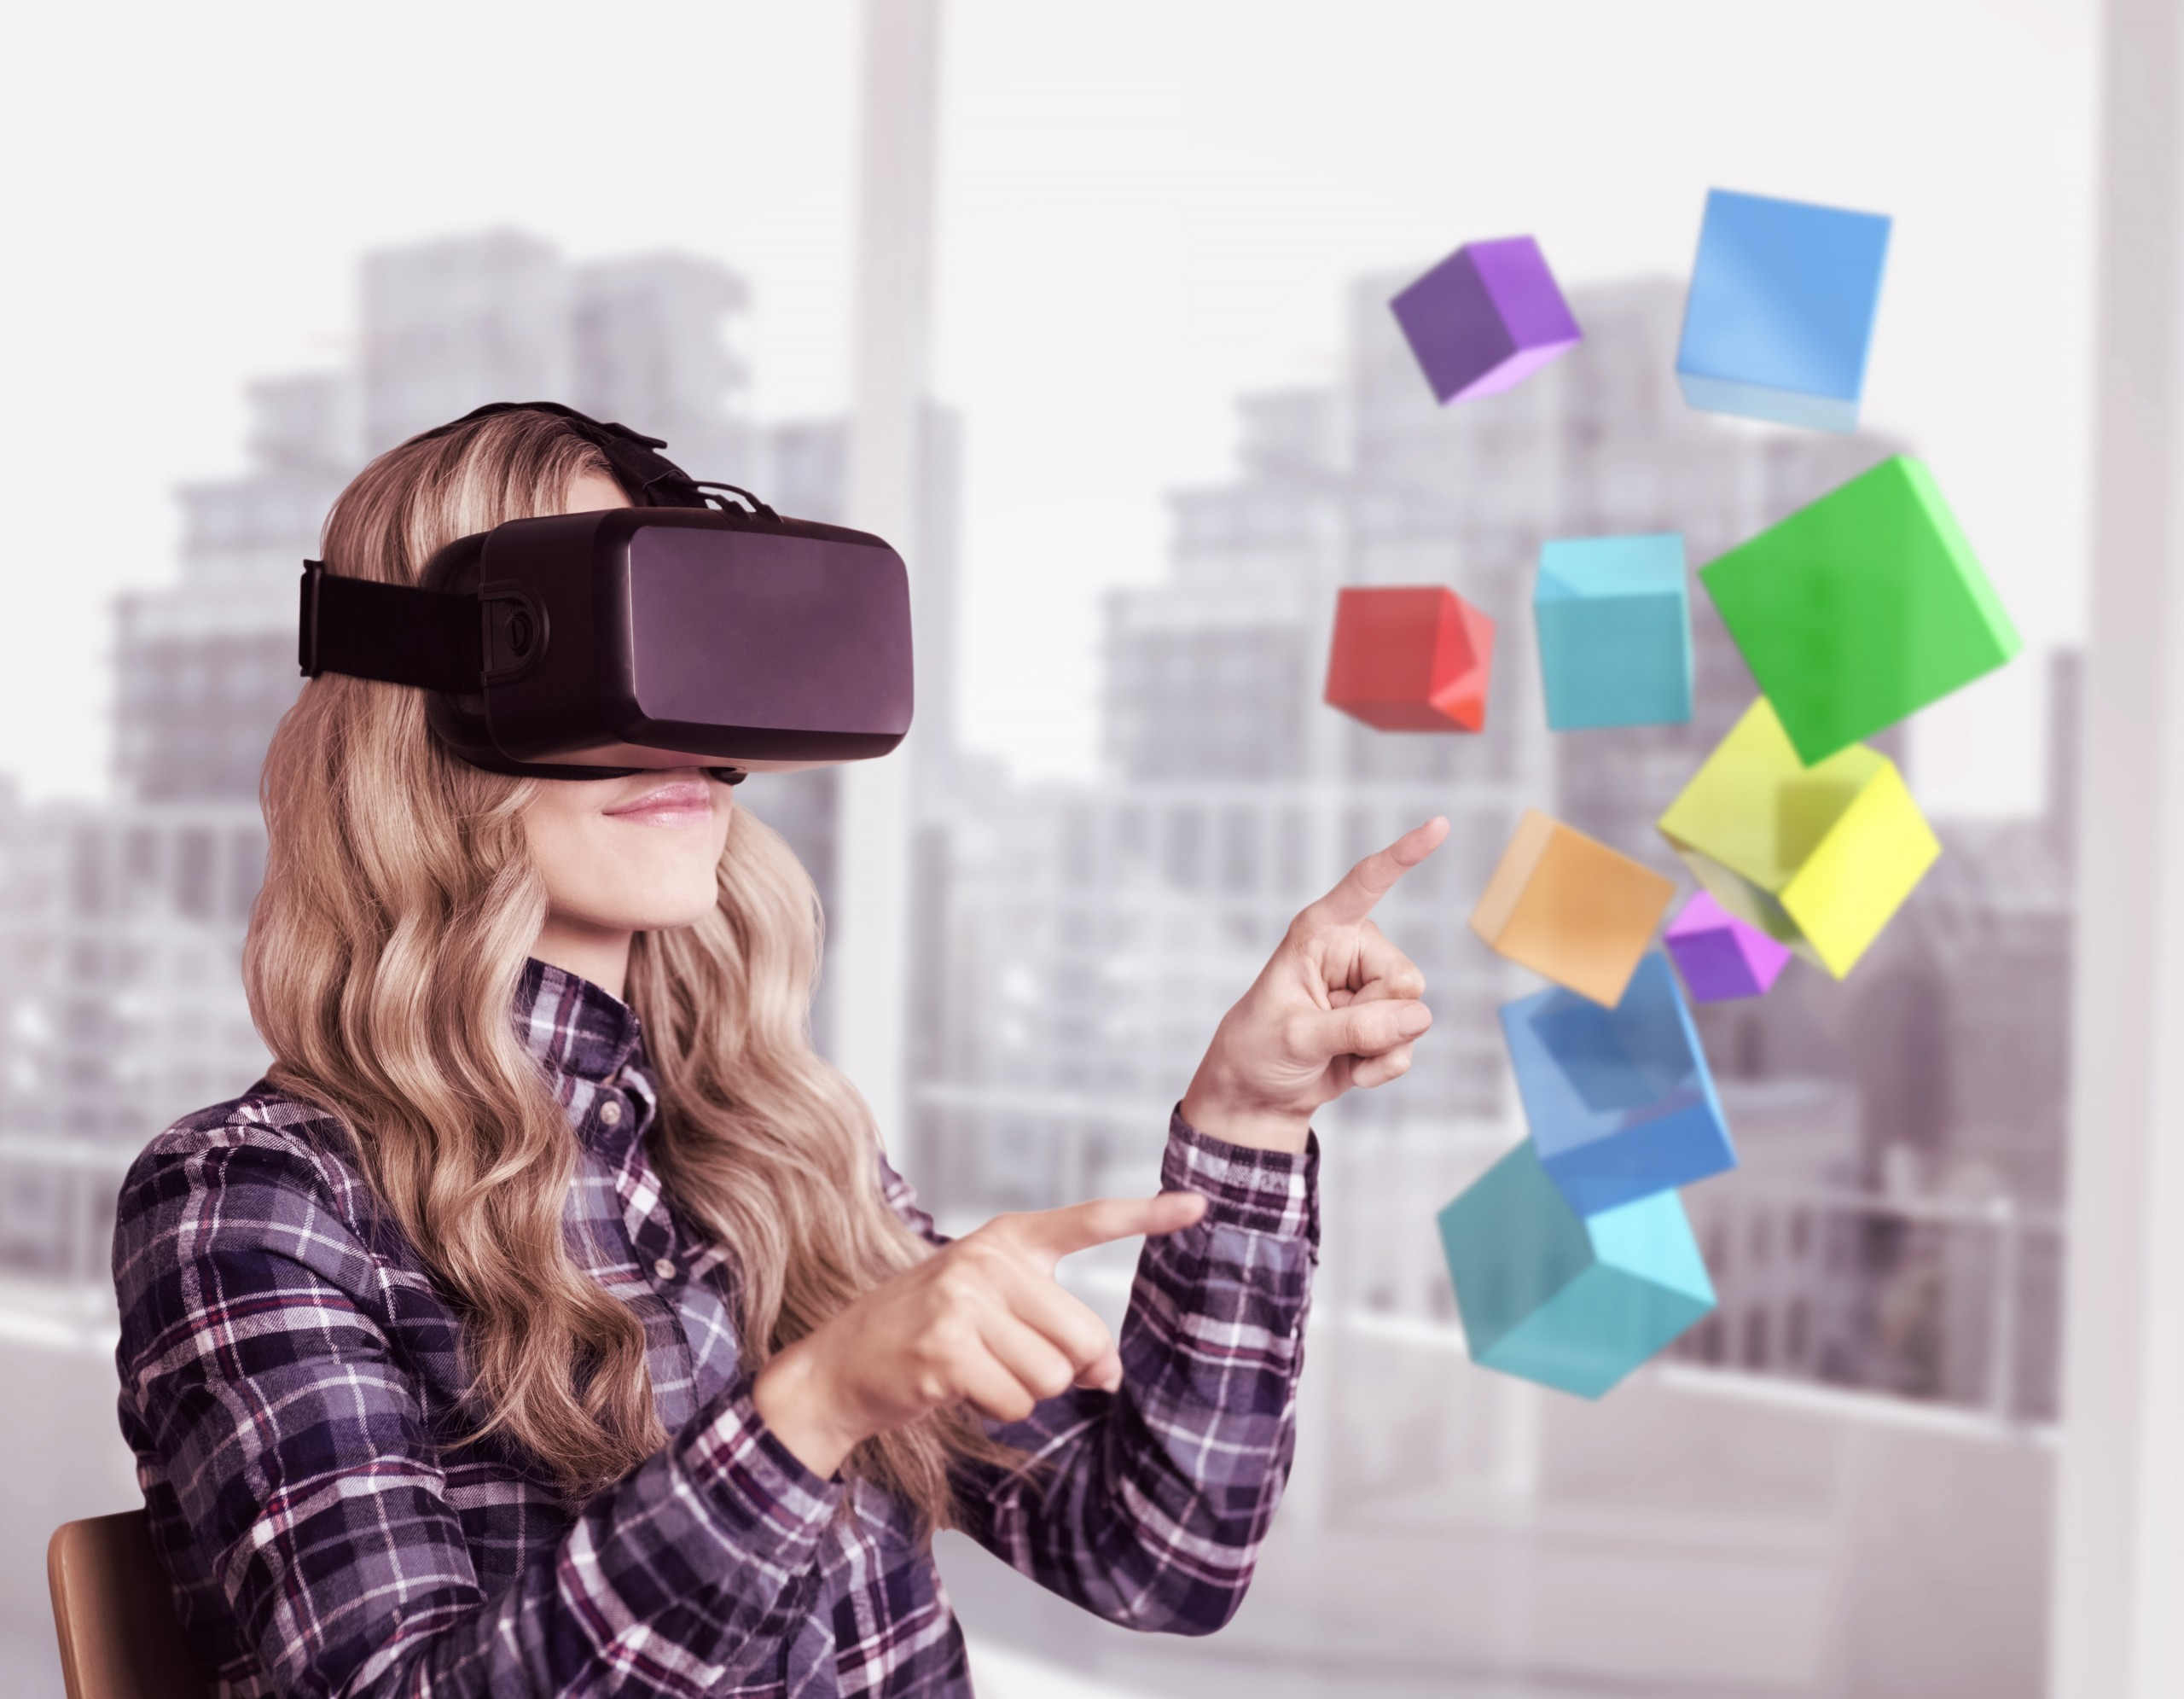 Woman manipulating virtual cubes using VR device